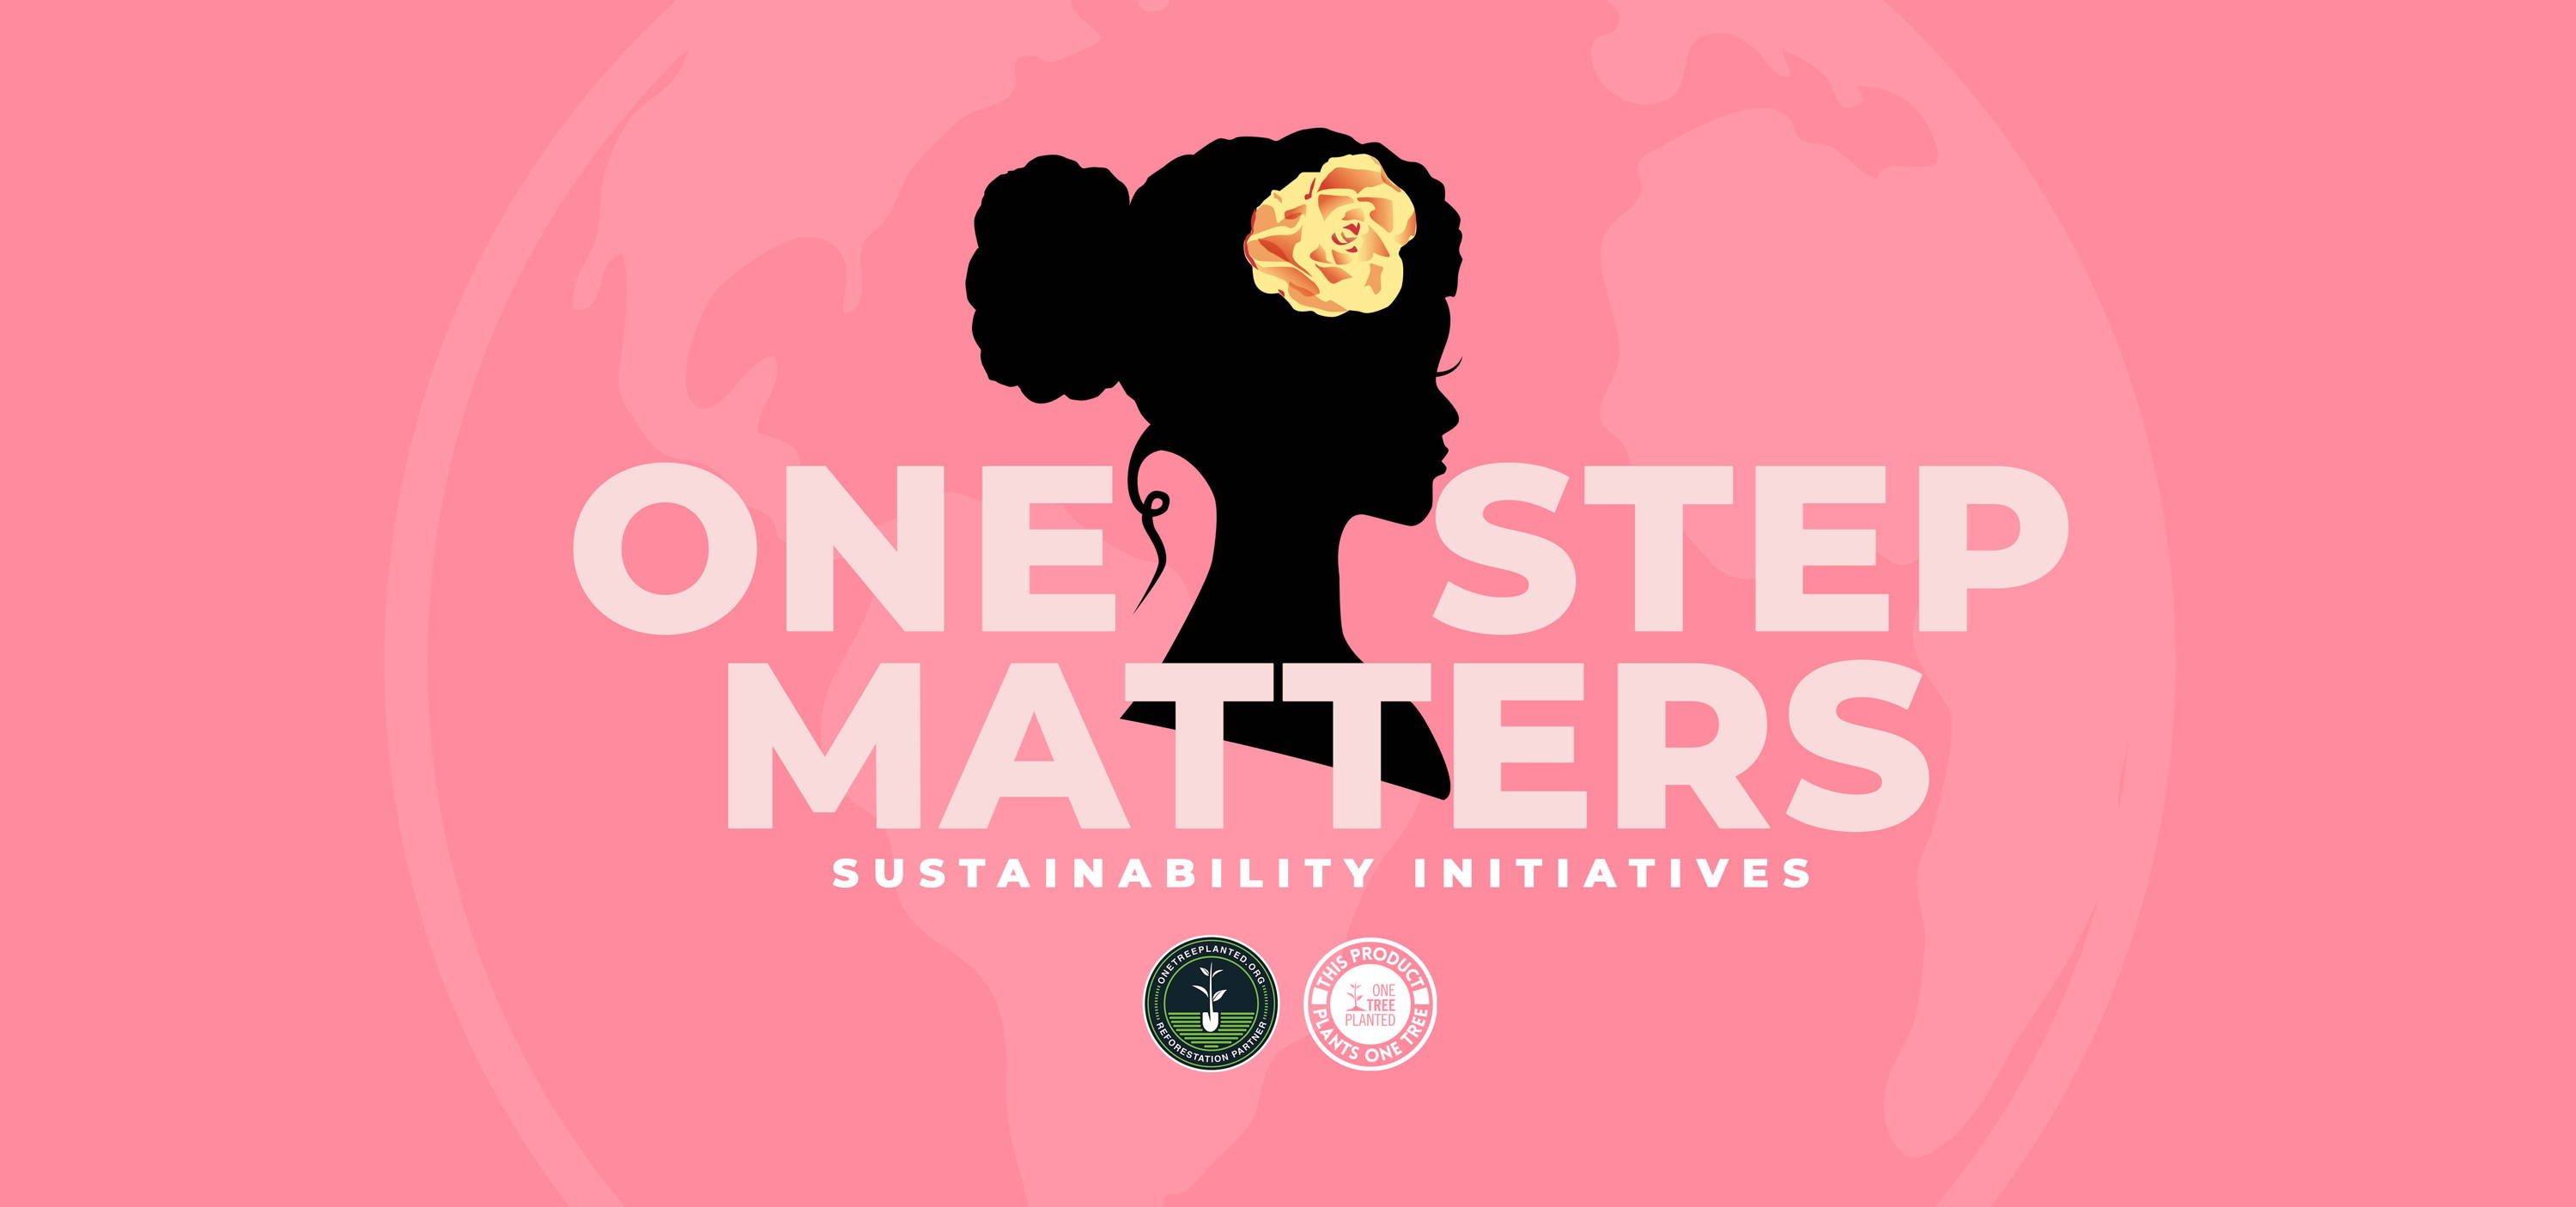 ONE STEP MATTERS